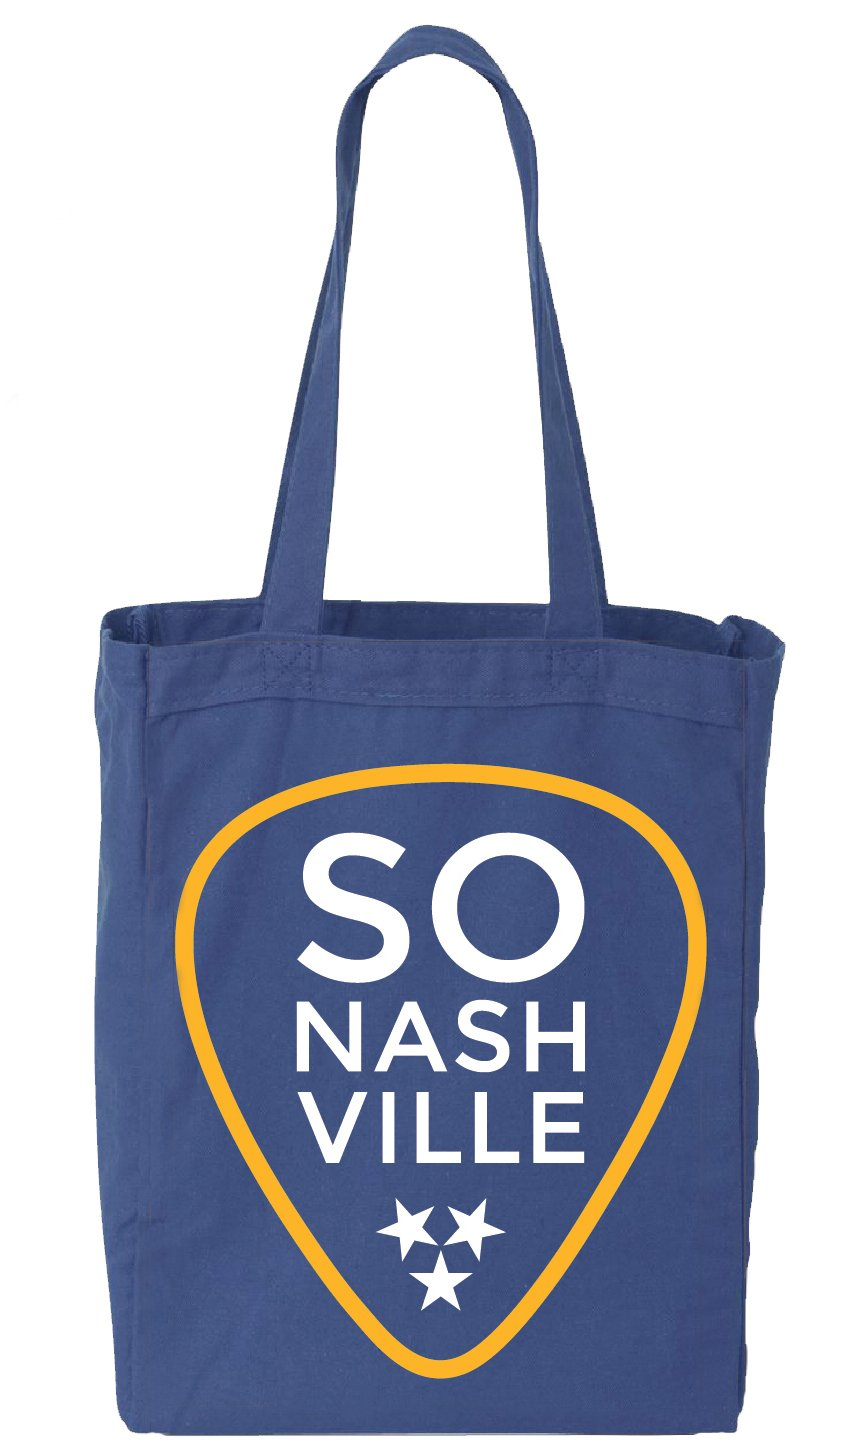 So Nashville™ Canvas Bag - So Nashville